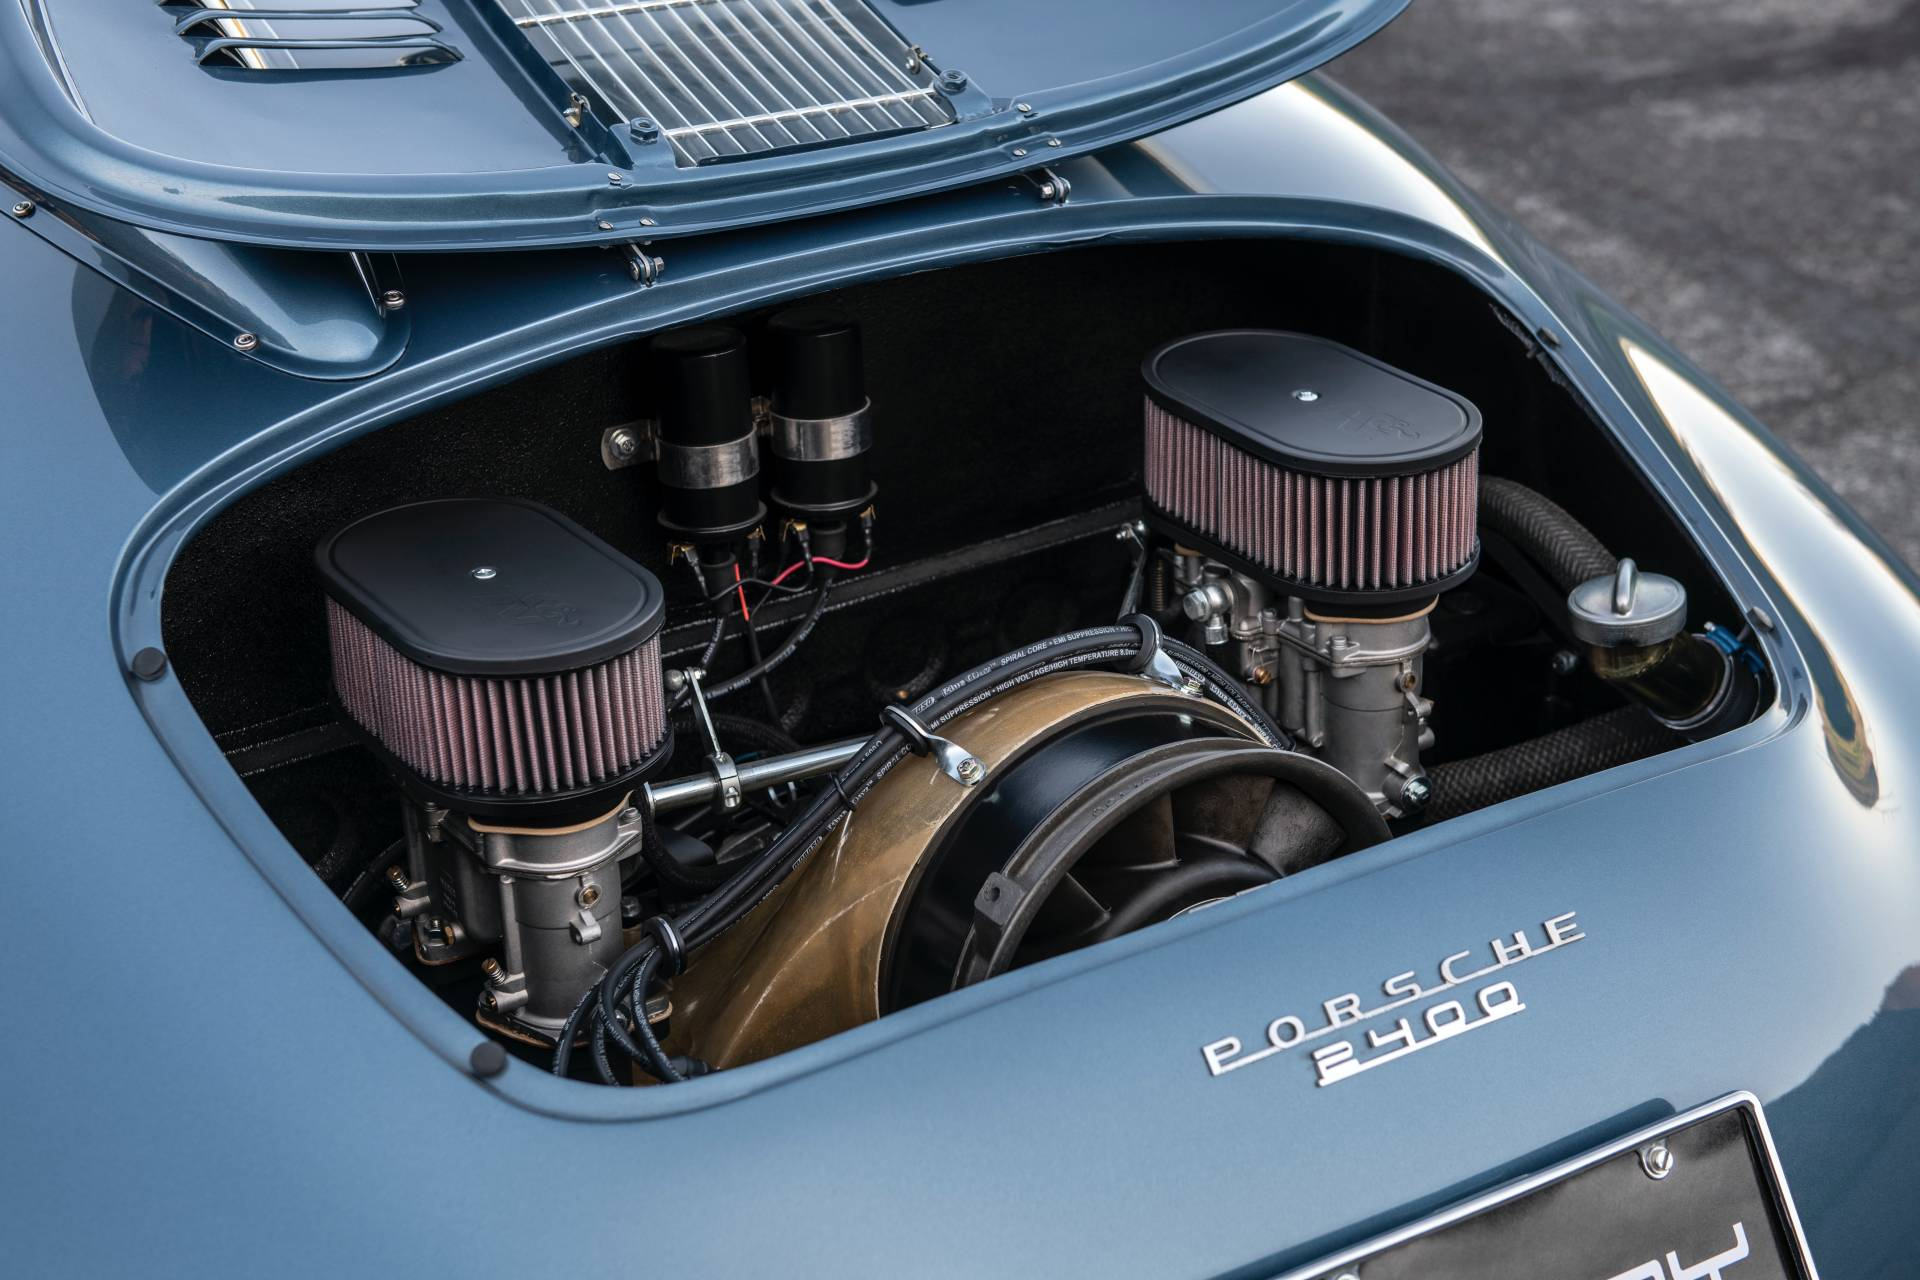 Porsche-356-Speedster-1959-Aquamarine-Transitional-By-Emory-Motorsport-23